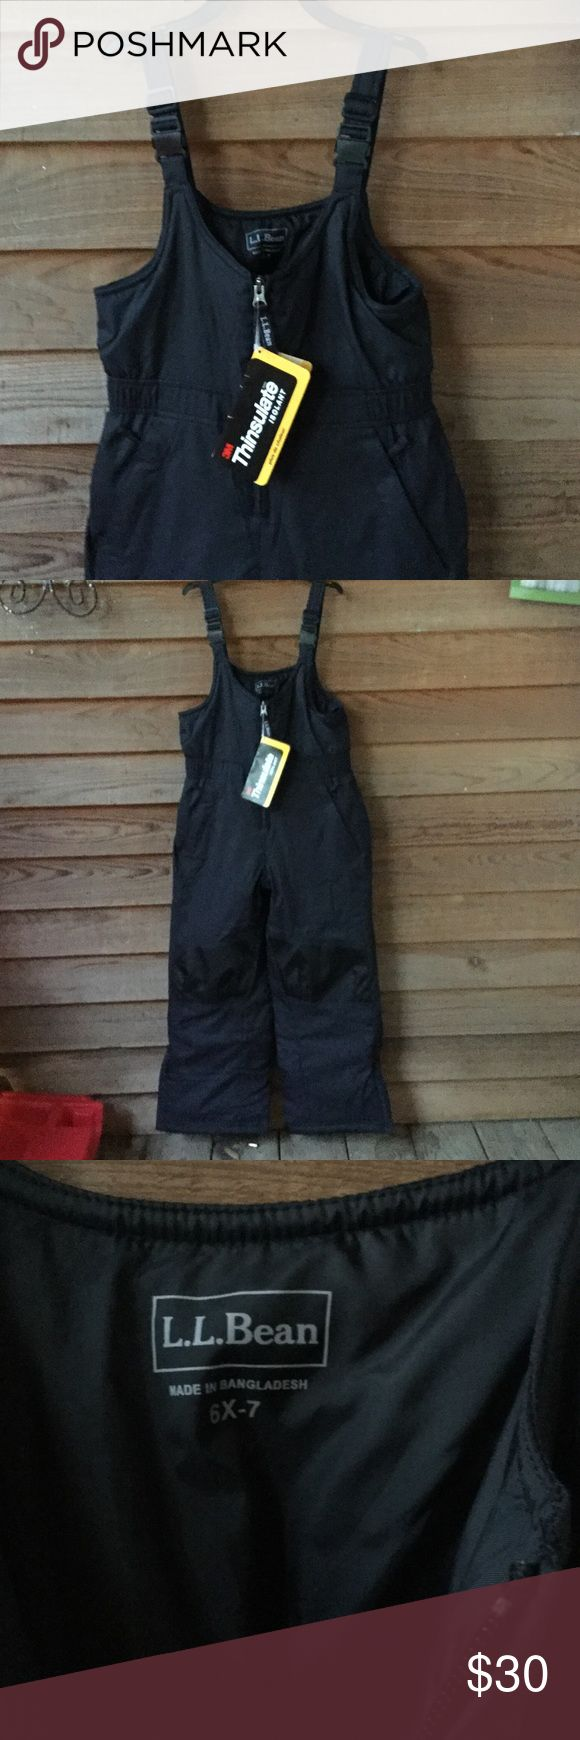 NWT Kids L.L. Bean Snow suit Brand new with tags. Never worn. Thinsulate insulation for extra warmth. Zip close pockets and zippers at bottoms for room for your boots!size 6X-7. L.L. Bean Jackets & Coats